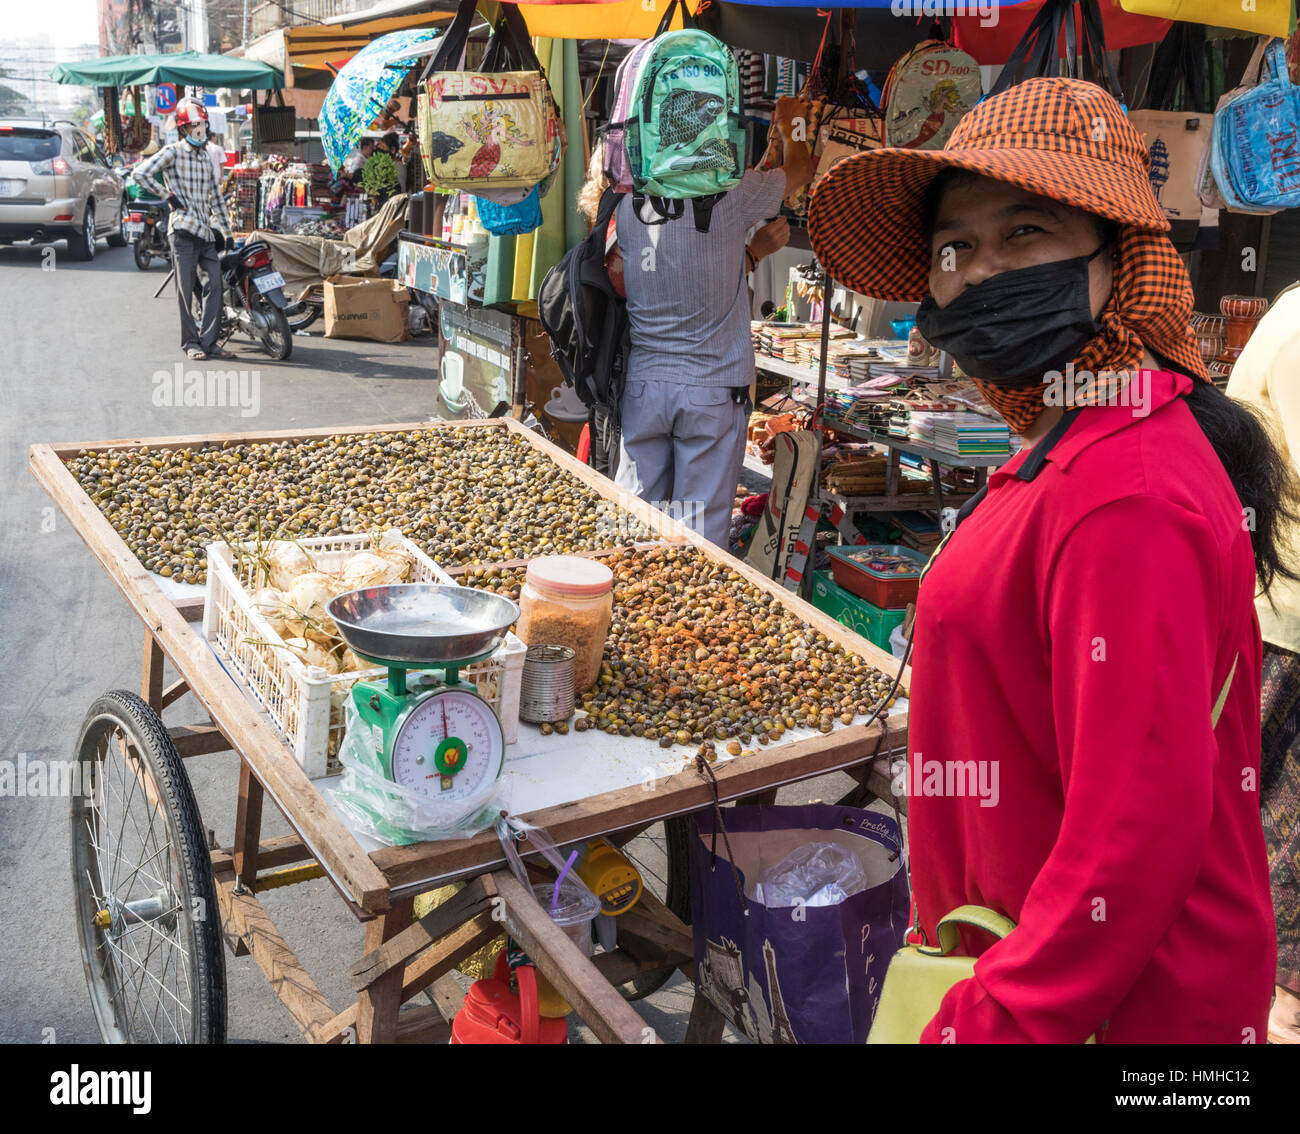 Cockle (mussel) seller and cart, Russian Market, Phnom Penh, Cambodia - Stock Image